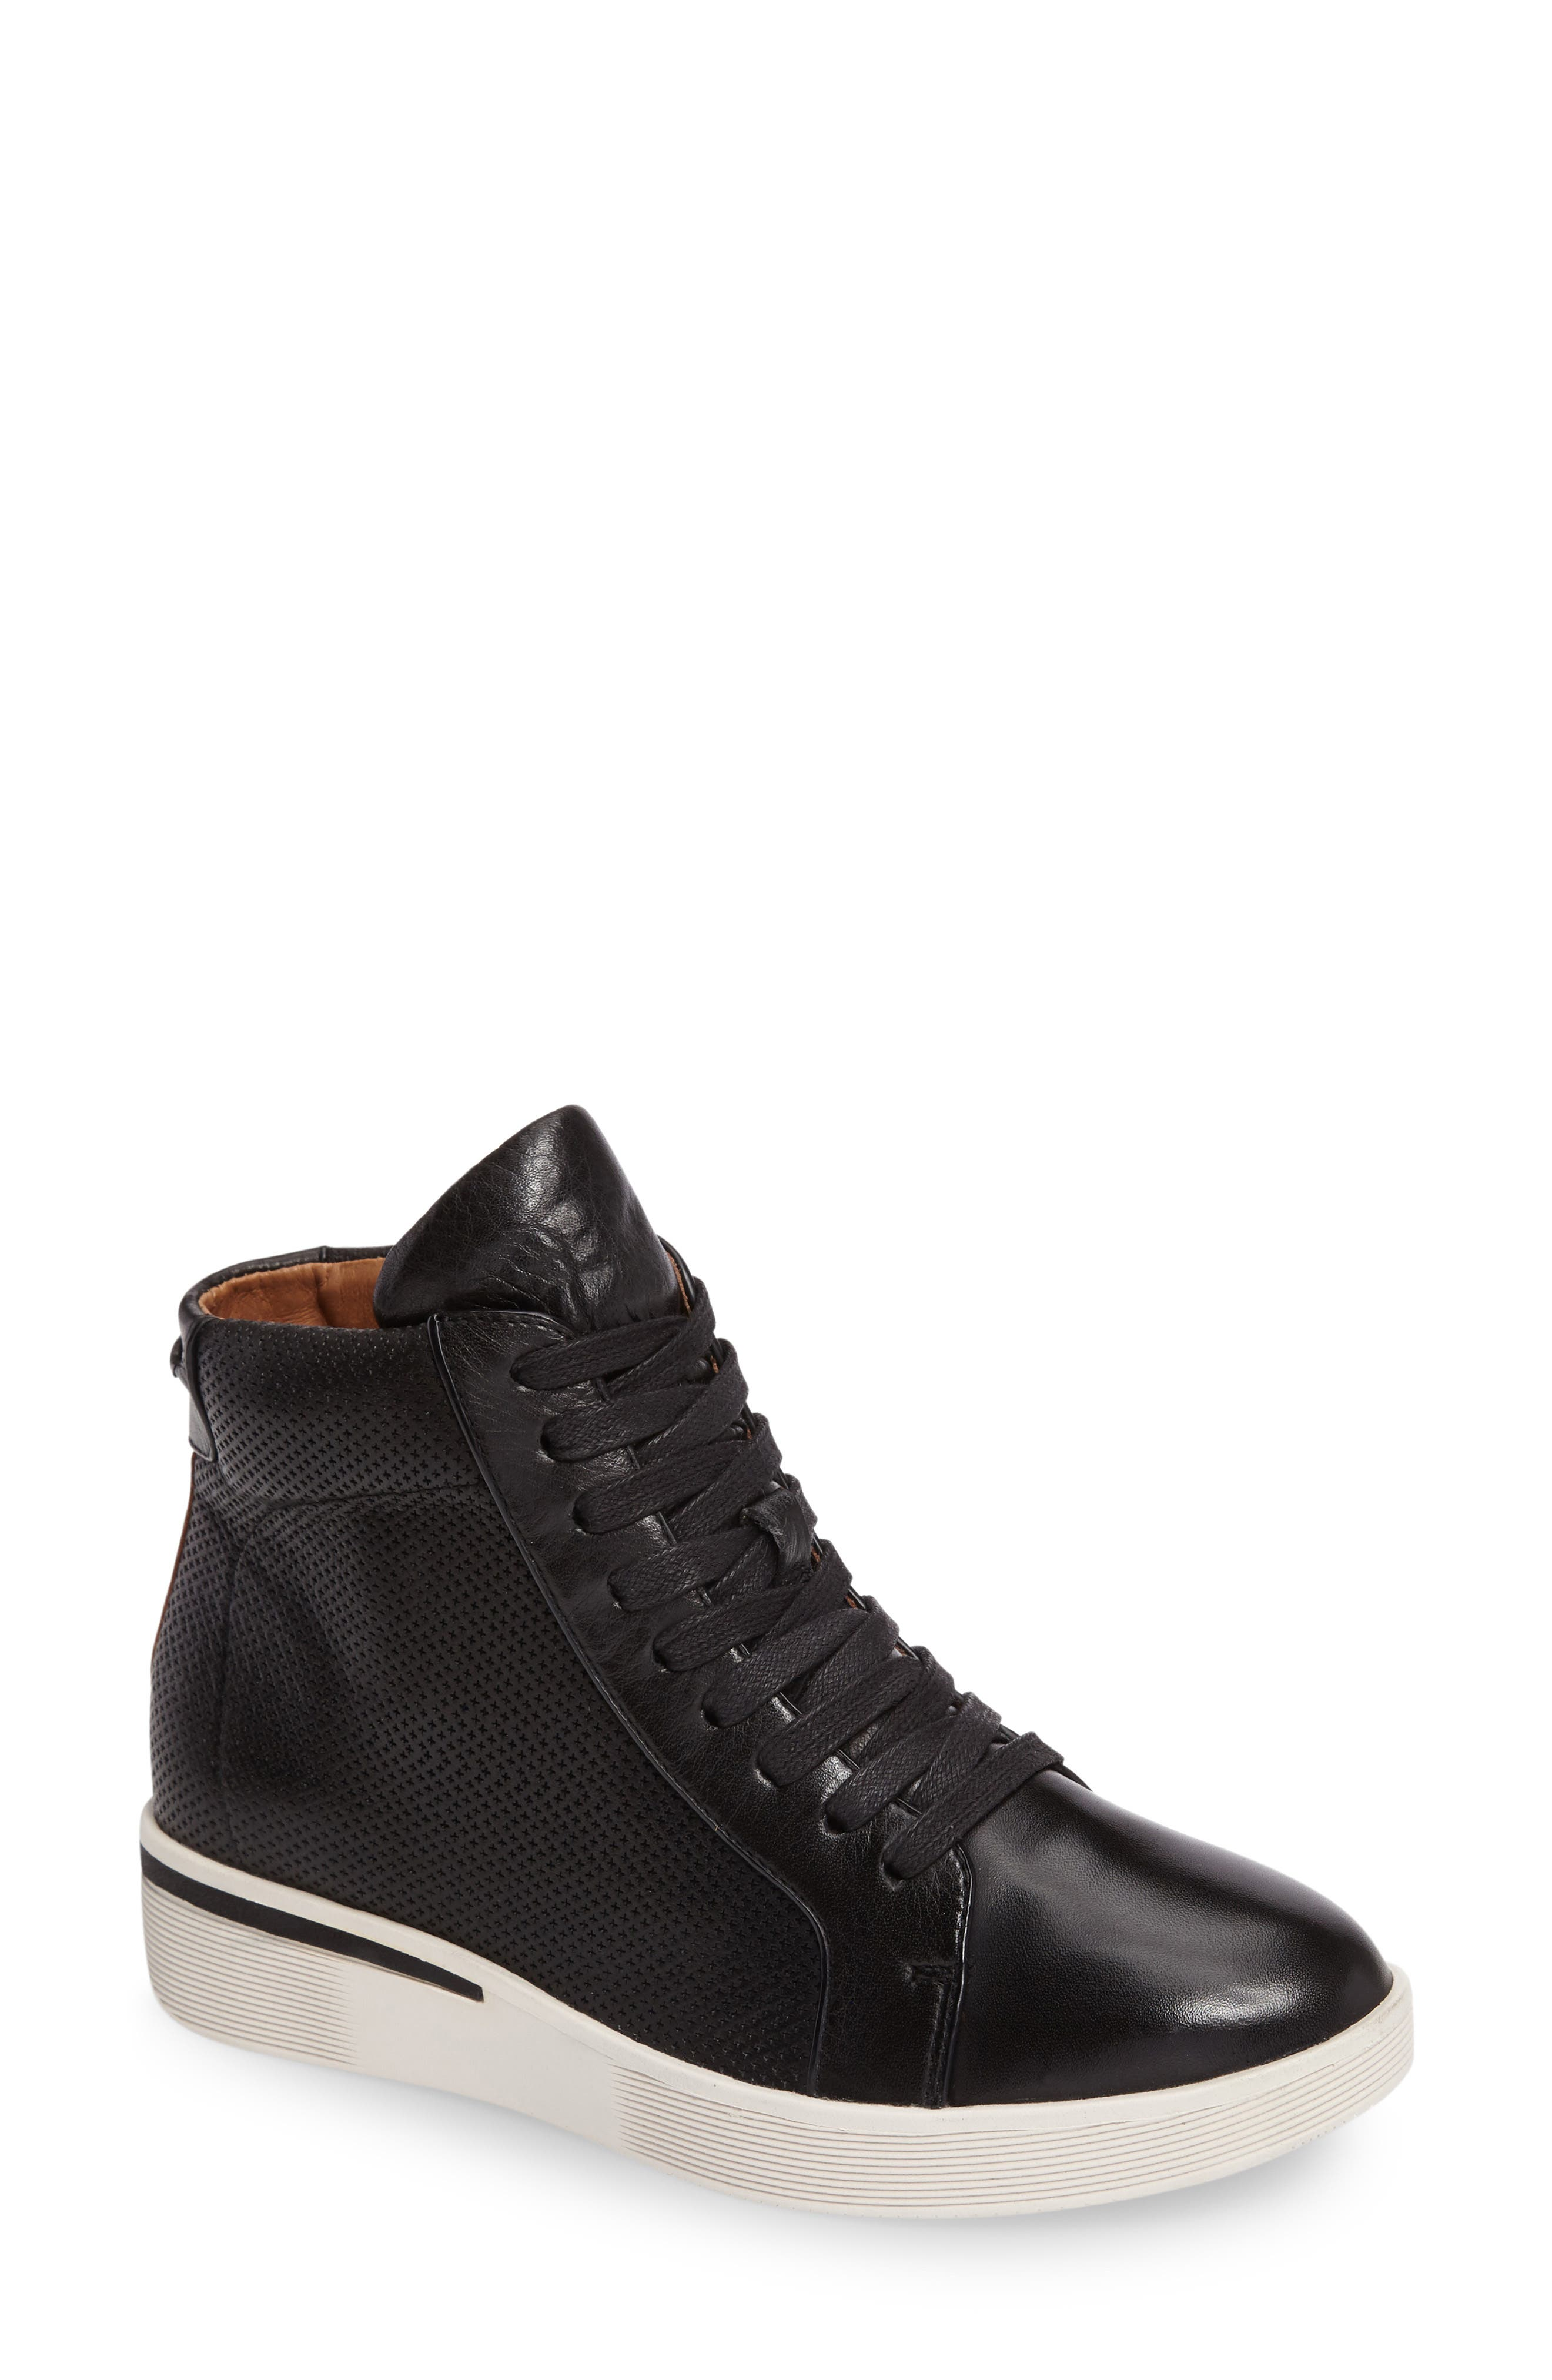 Gentle Souls Helka High Top Sneaker,                             Main thumbnail 1, color,                             001